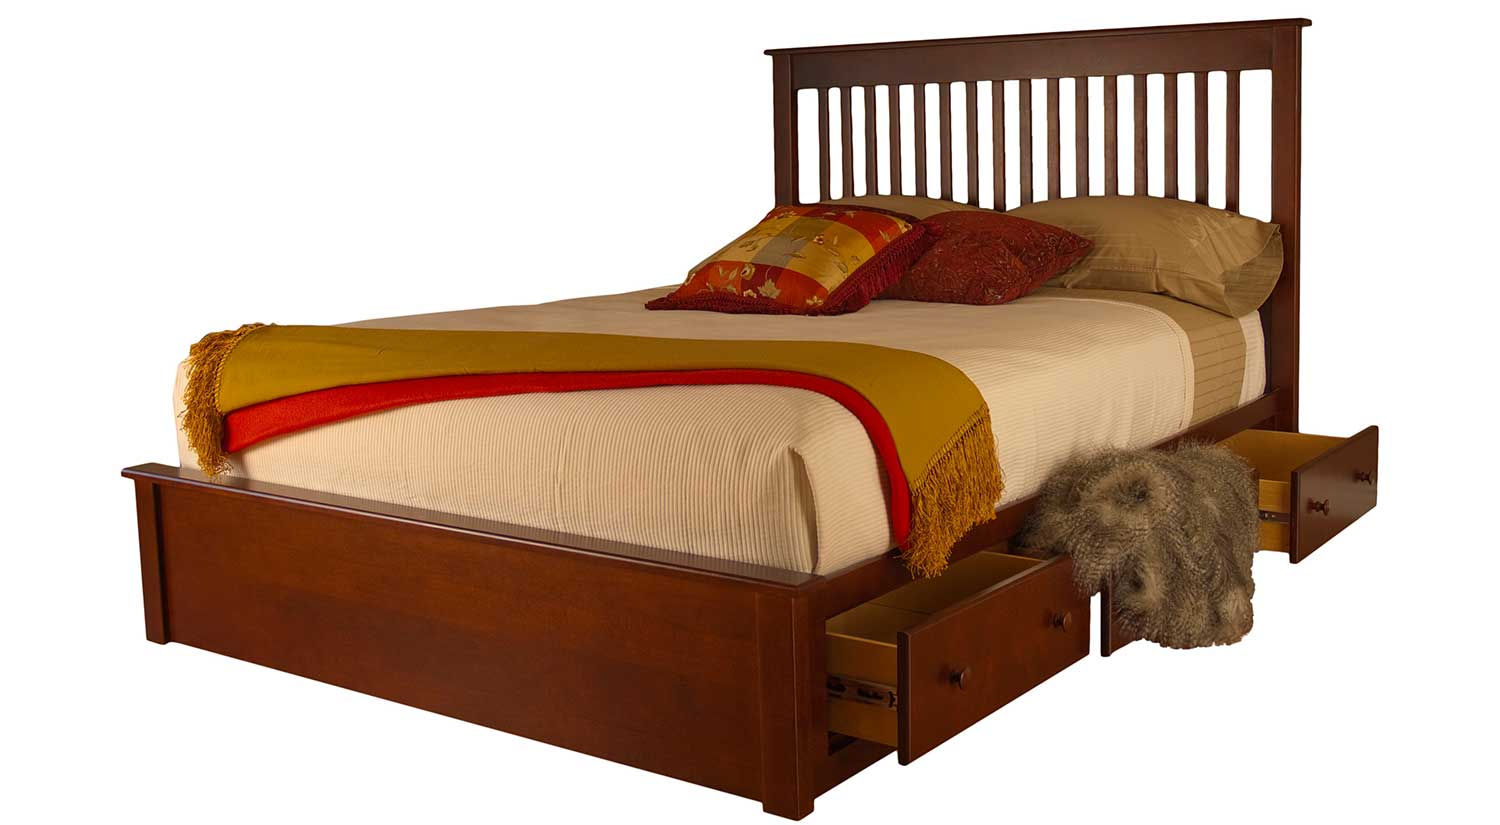 Circle Furniture Rossport Queen Storage Bed